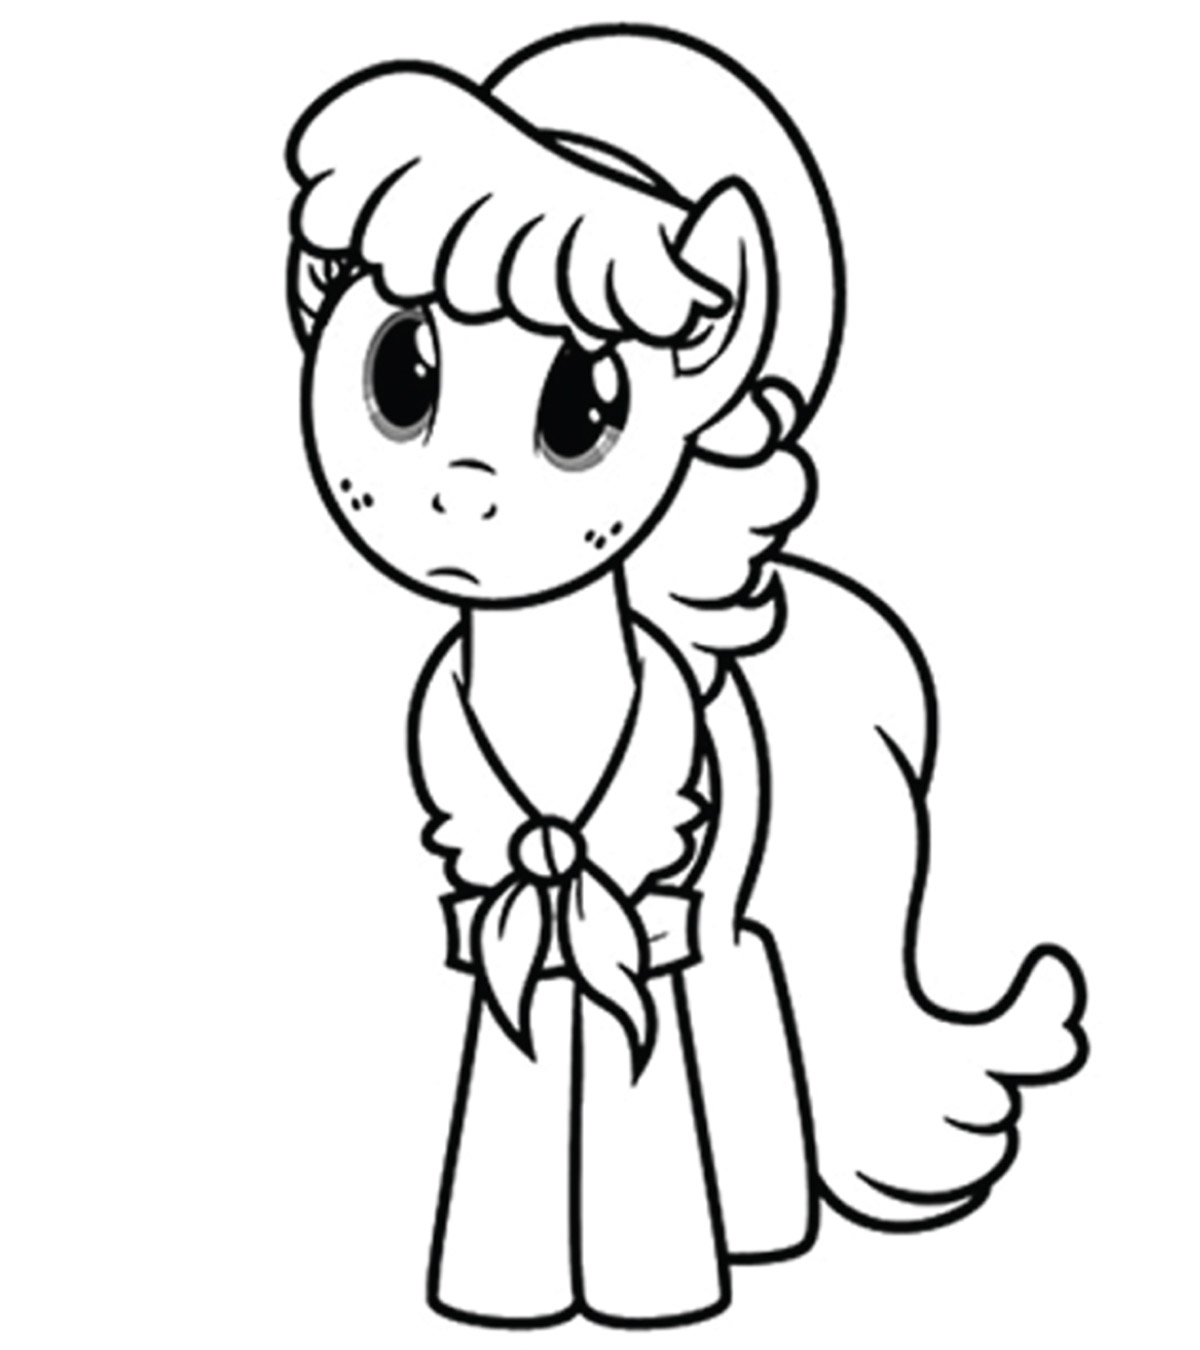 My Room Coloring Pages Top 55 My Little Pony Coloring Pages Your Toddler Will Love To Color